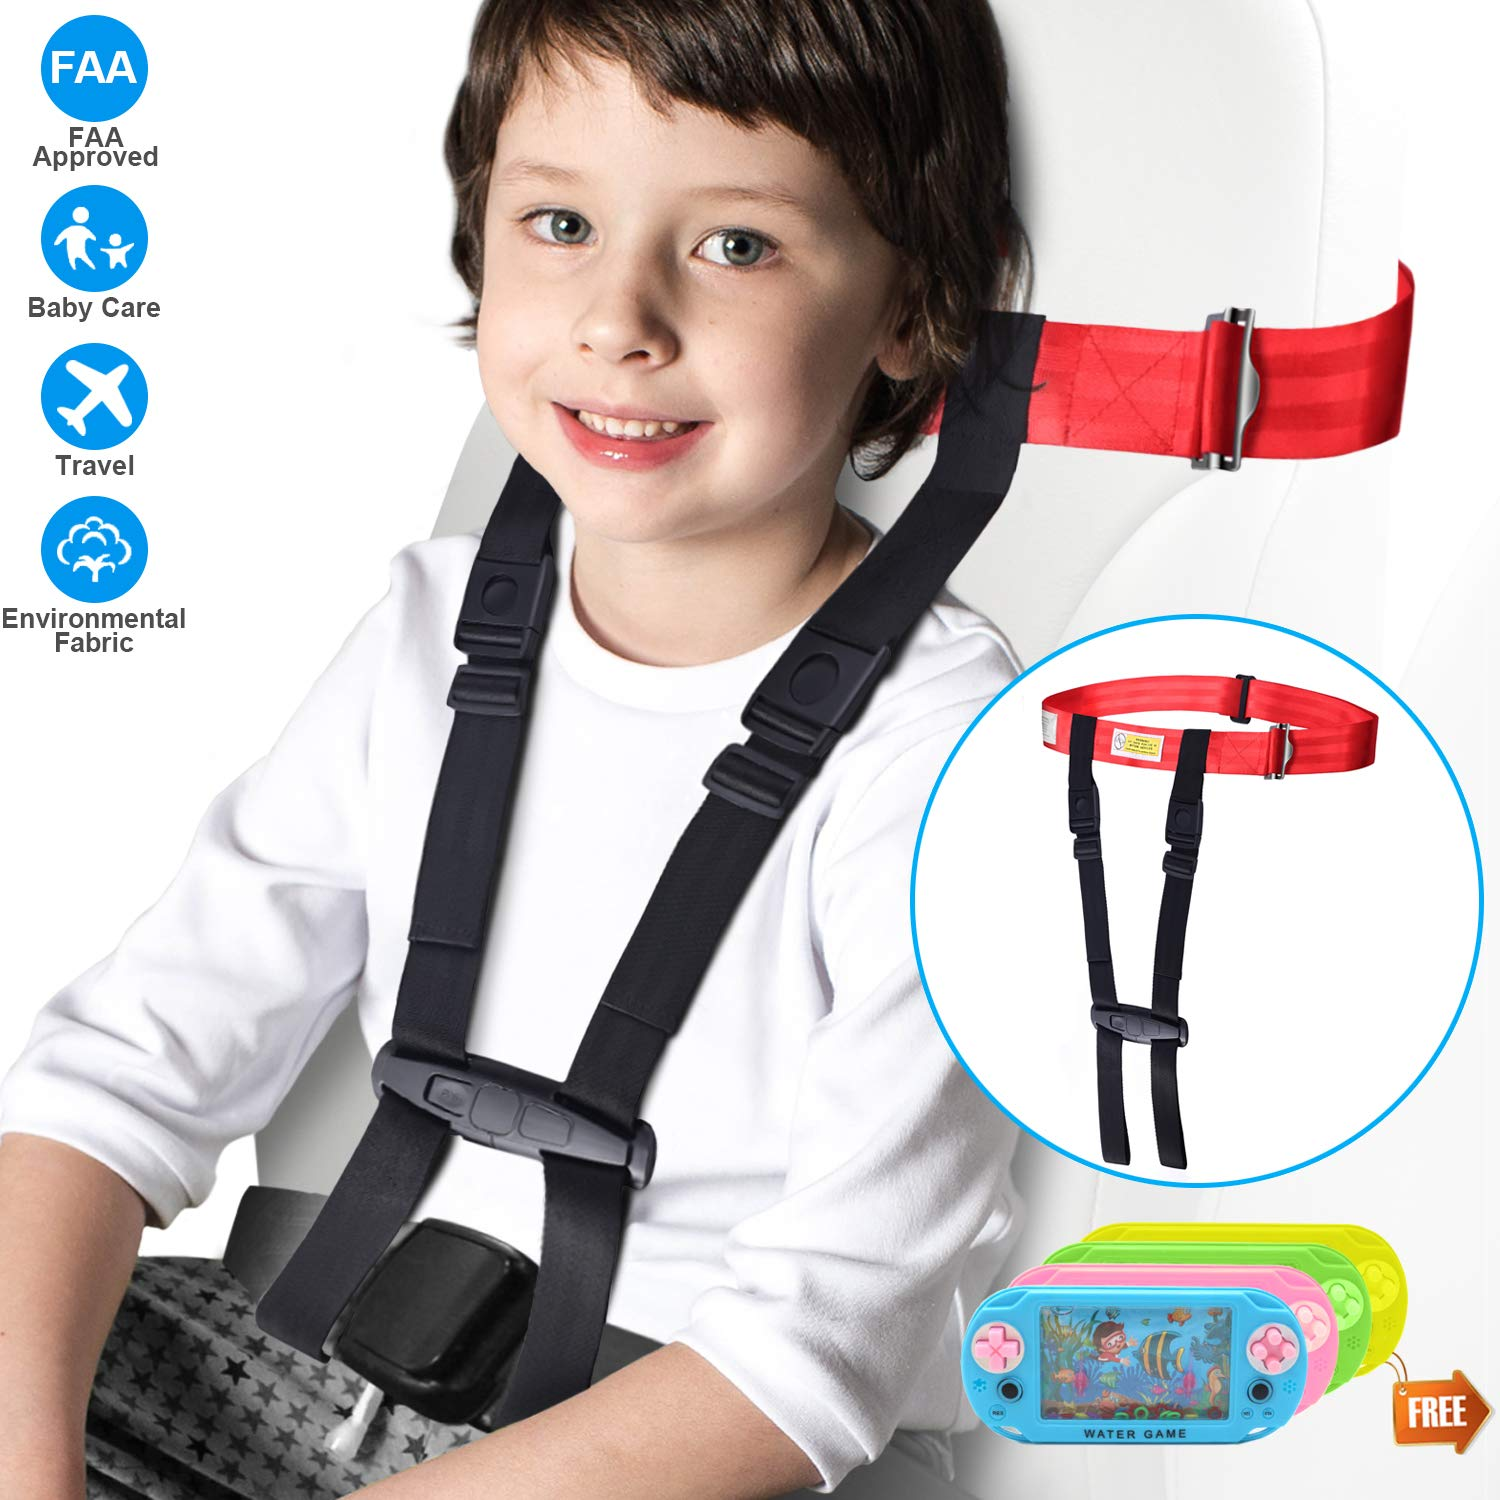 Kids Fly Safe Airplane Harness, Cares Harness for Toddlers in Fight, FAA Approved.